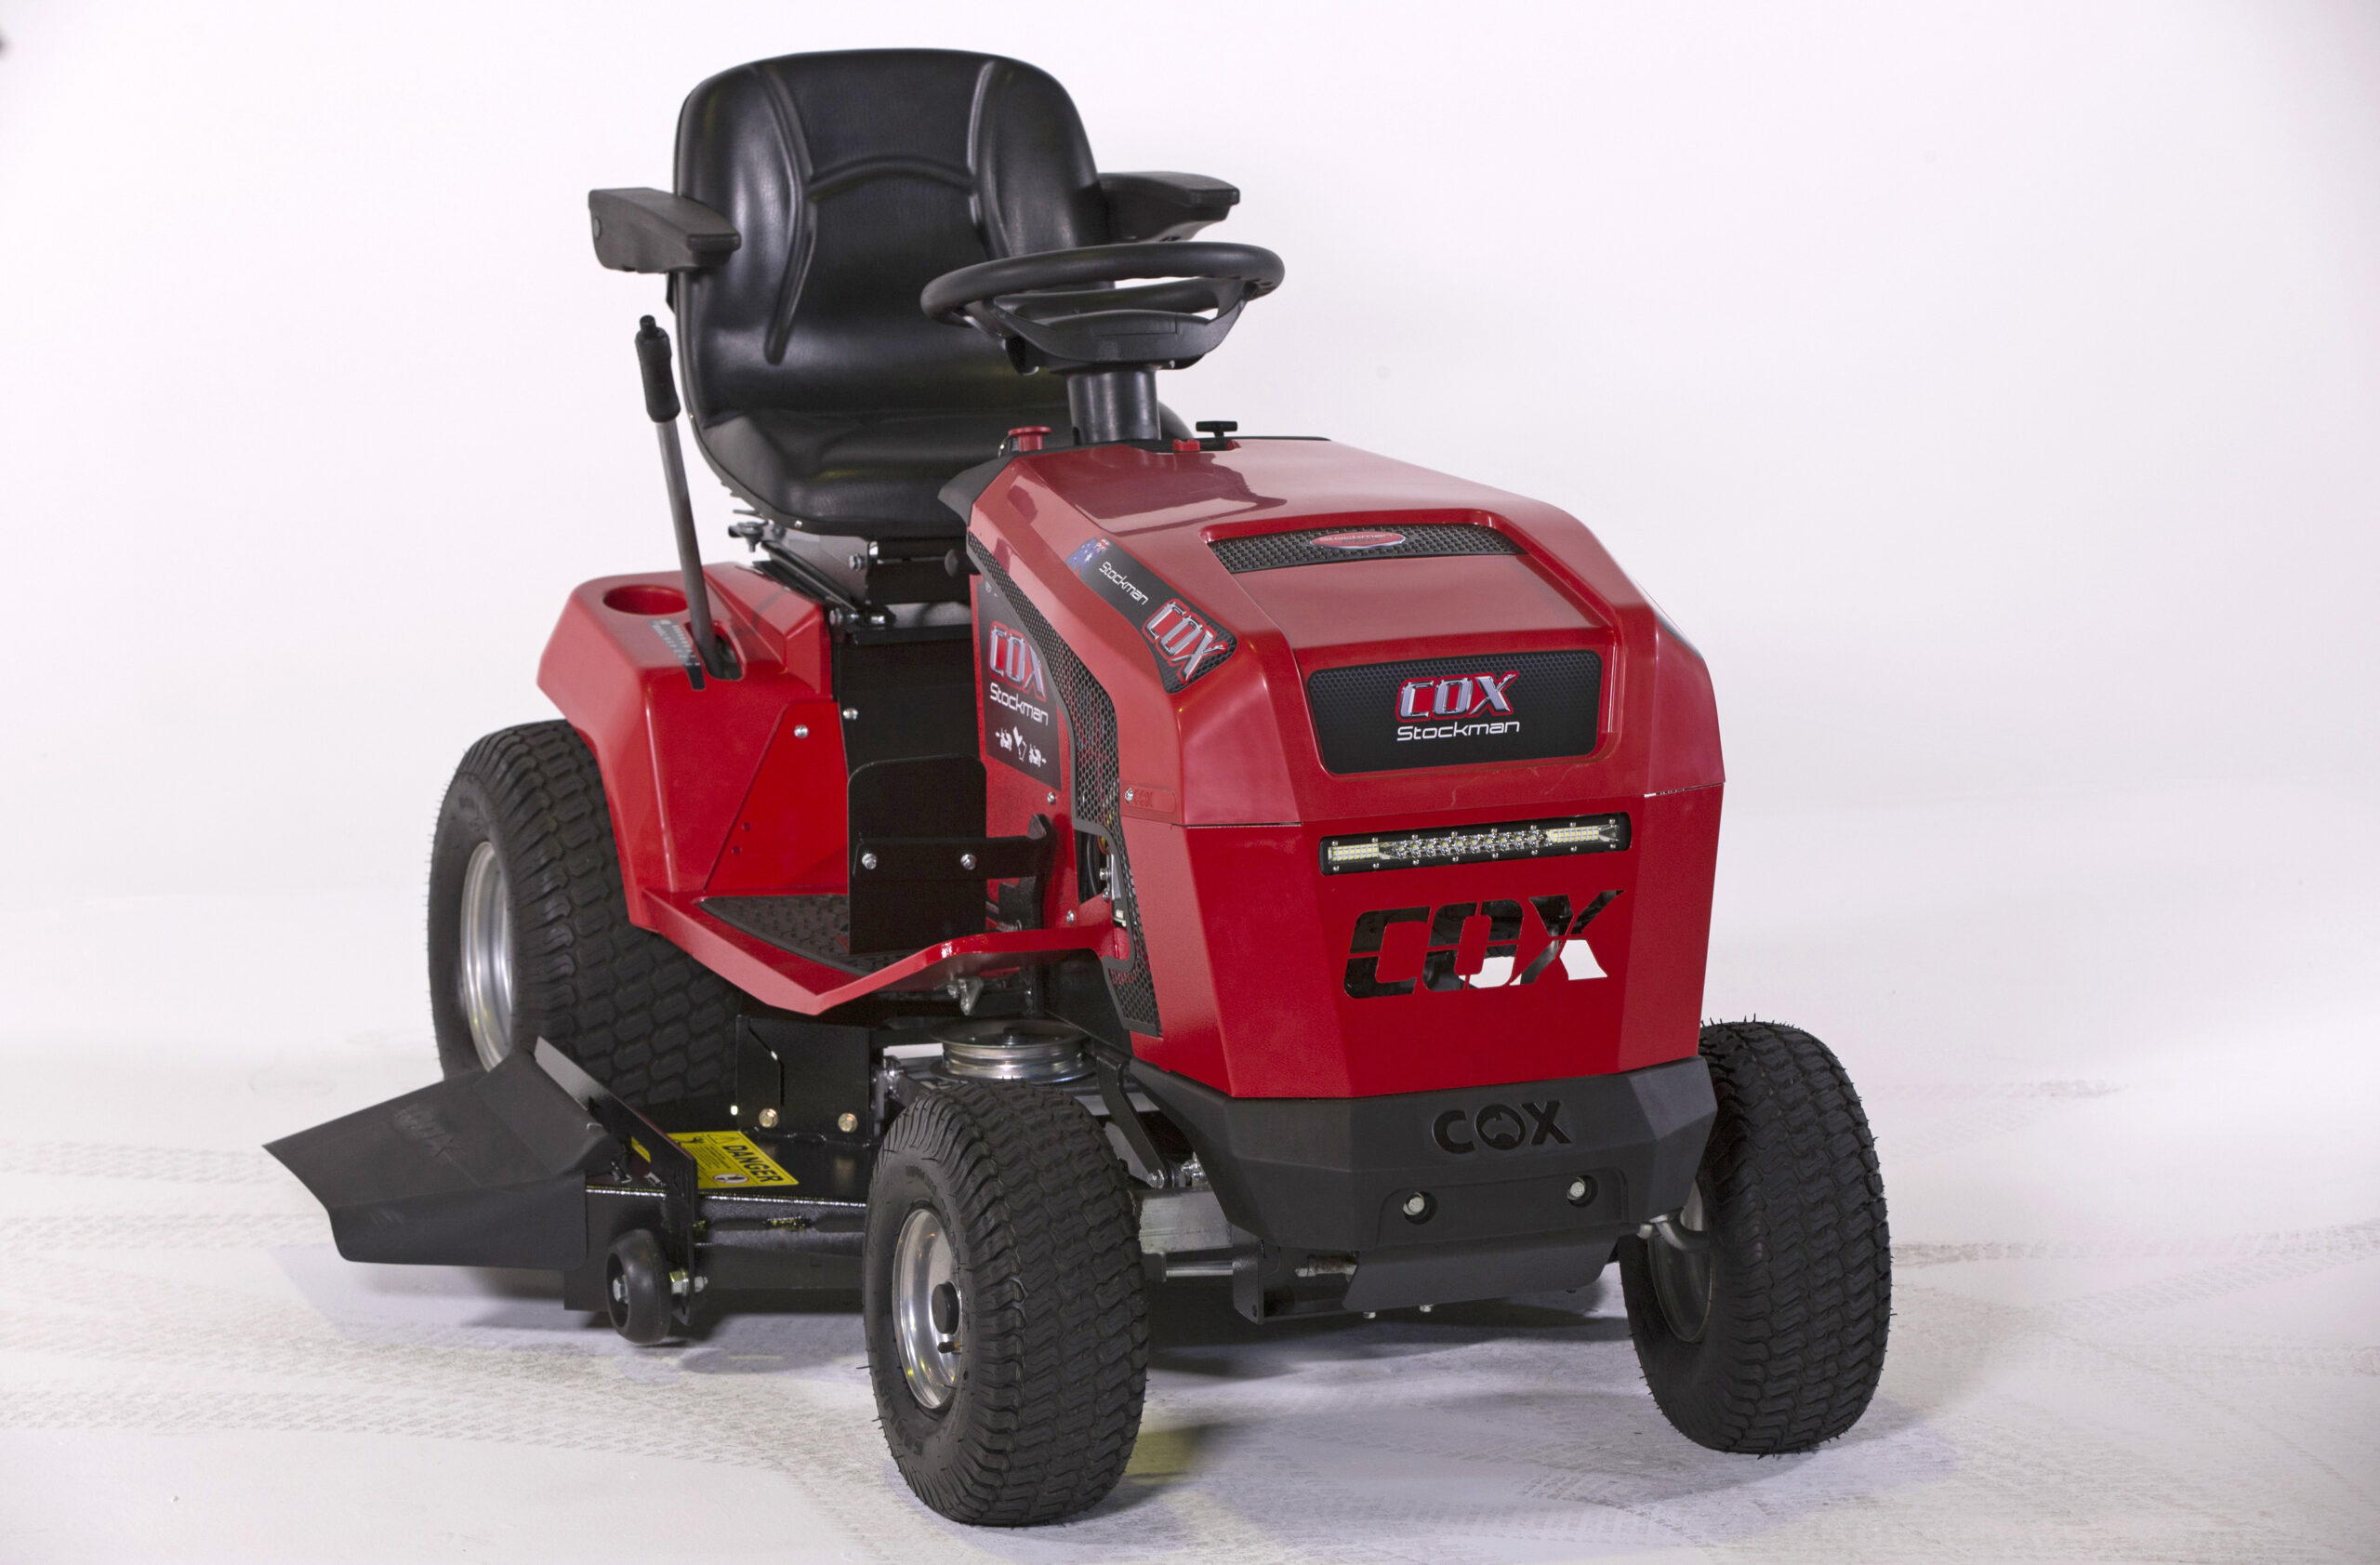 image of the Cox Stockman Plus CTL20B40 Ride on Lawn Mower